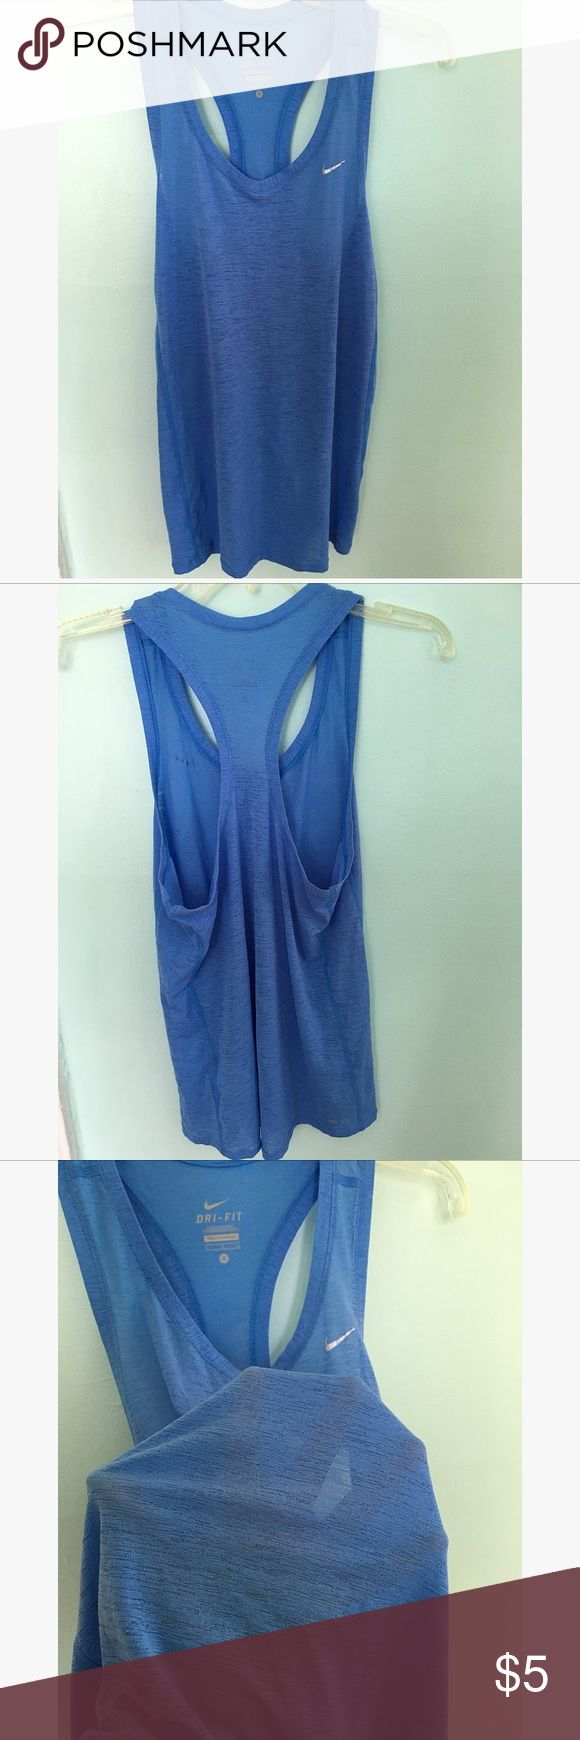 nike semi see through tank top Size S . Loose fit . In excellent condition. No holes or stains.  🌺🌷THIS TOP CAN BE YOUR FOR FREE IF YOU BUY AN NIKE ITEM FROM MY CLOSET 🌷🌼 Nike Tops Tank Tops